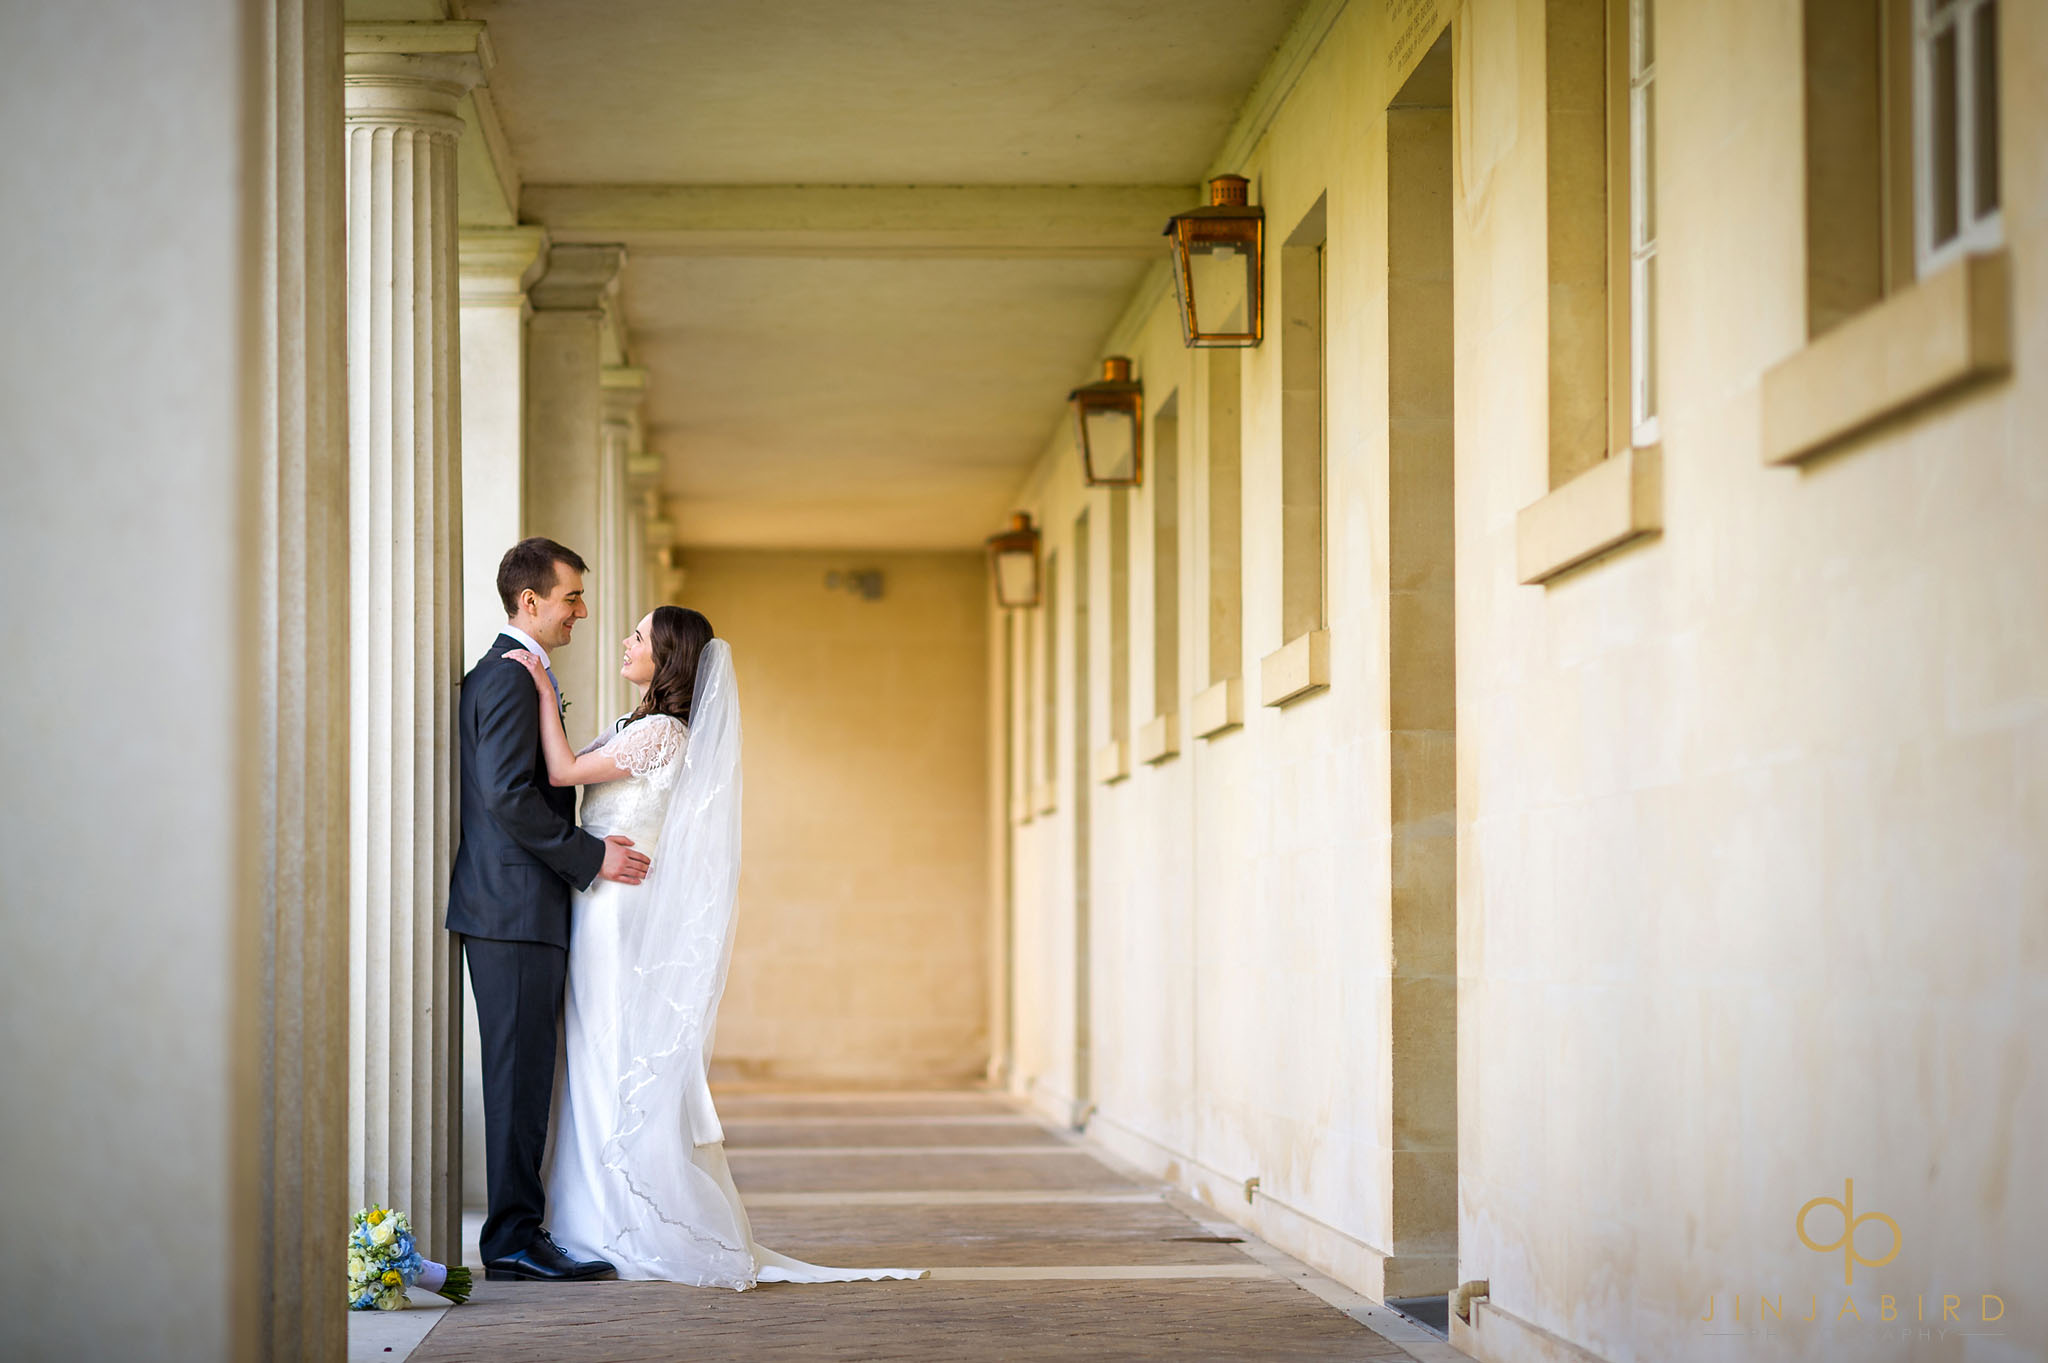 downing college wedding photographer